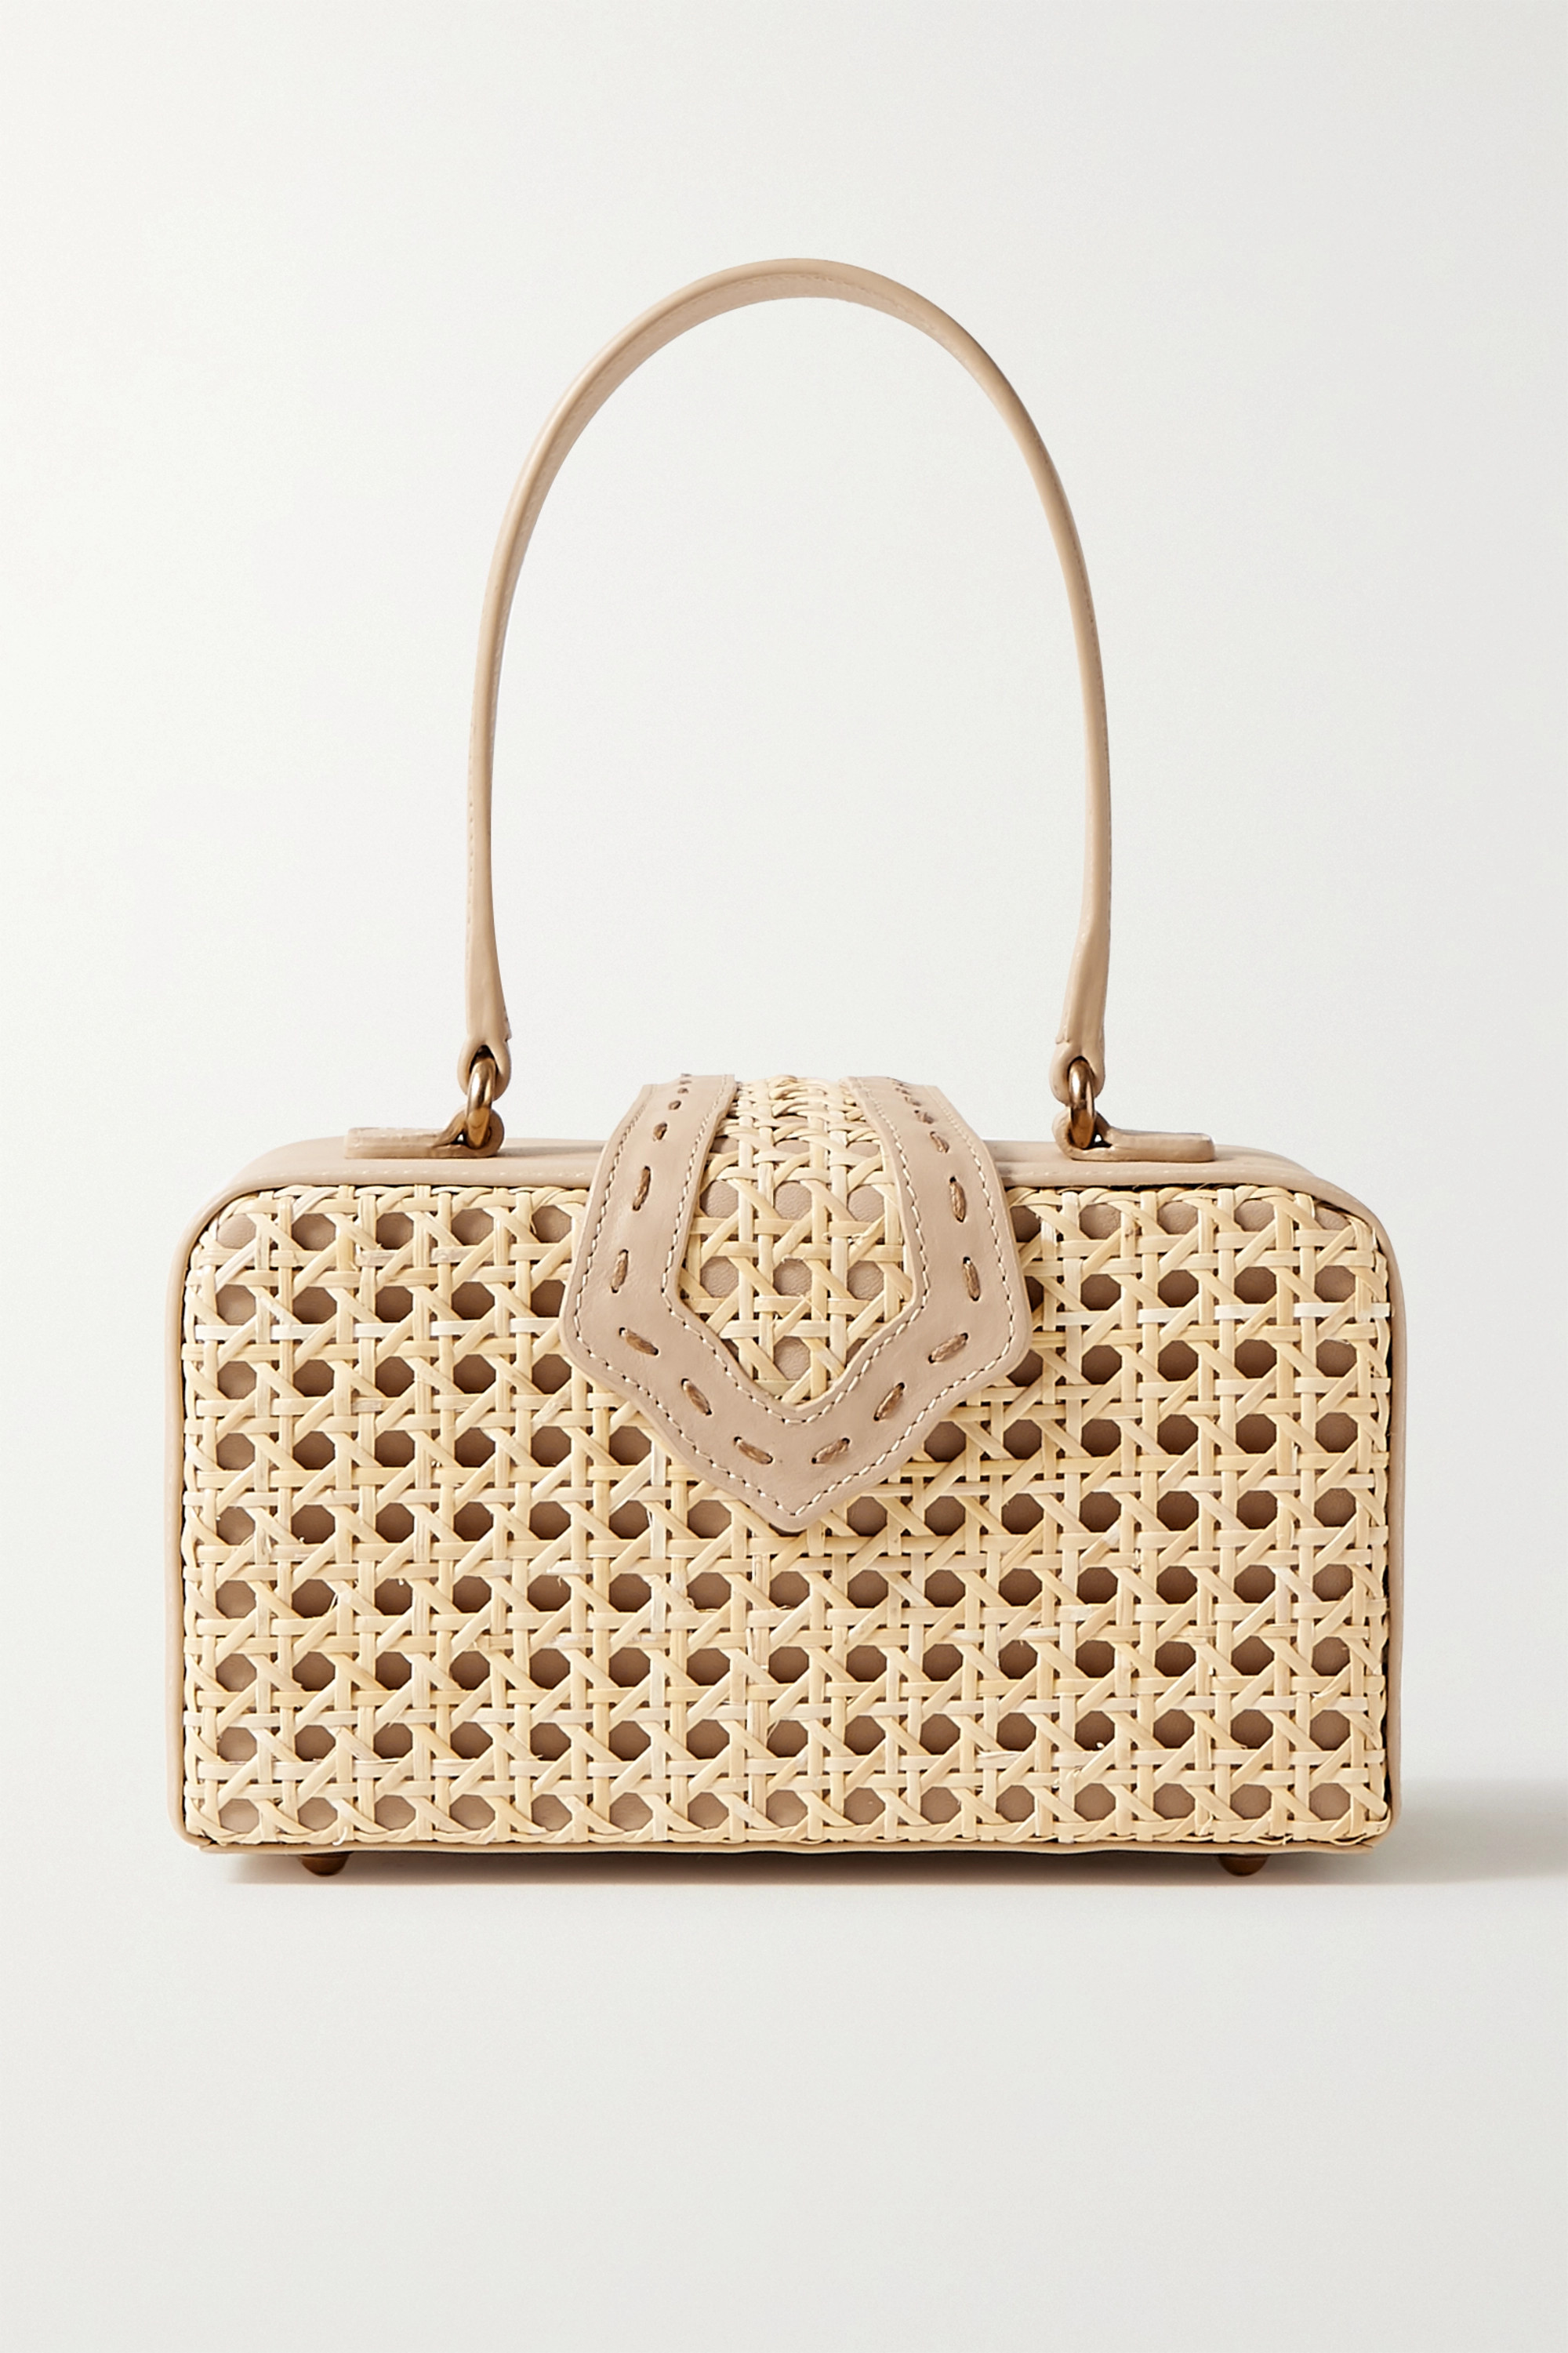 Mehry Mu Fey in the '50s rattan and leather tote